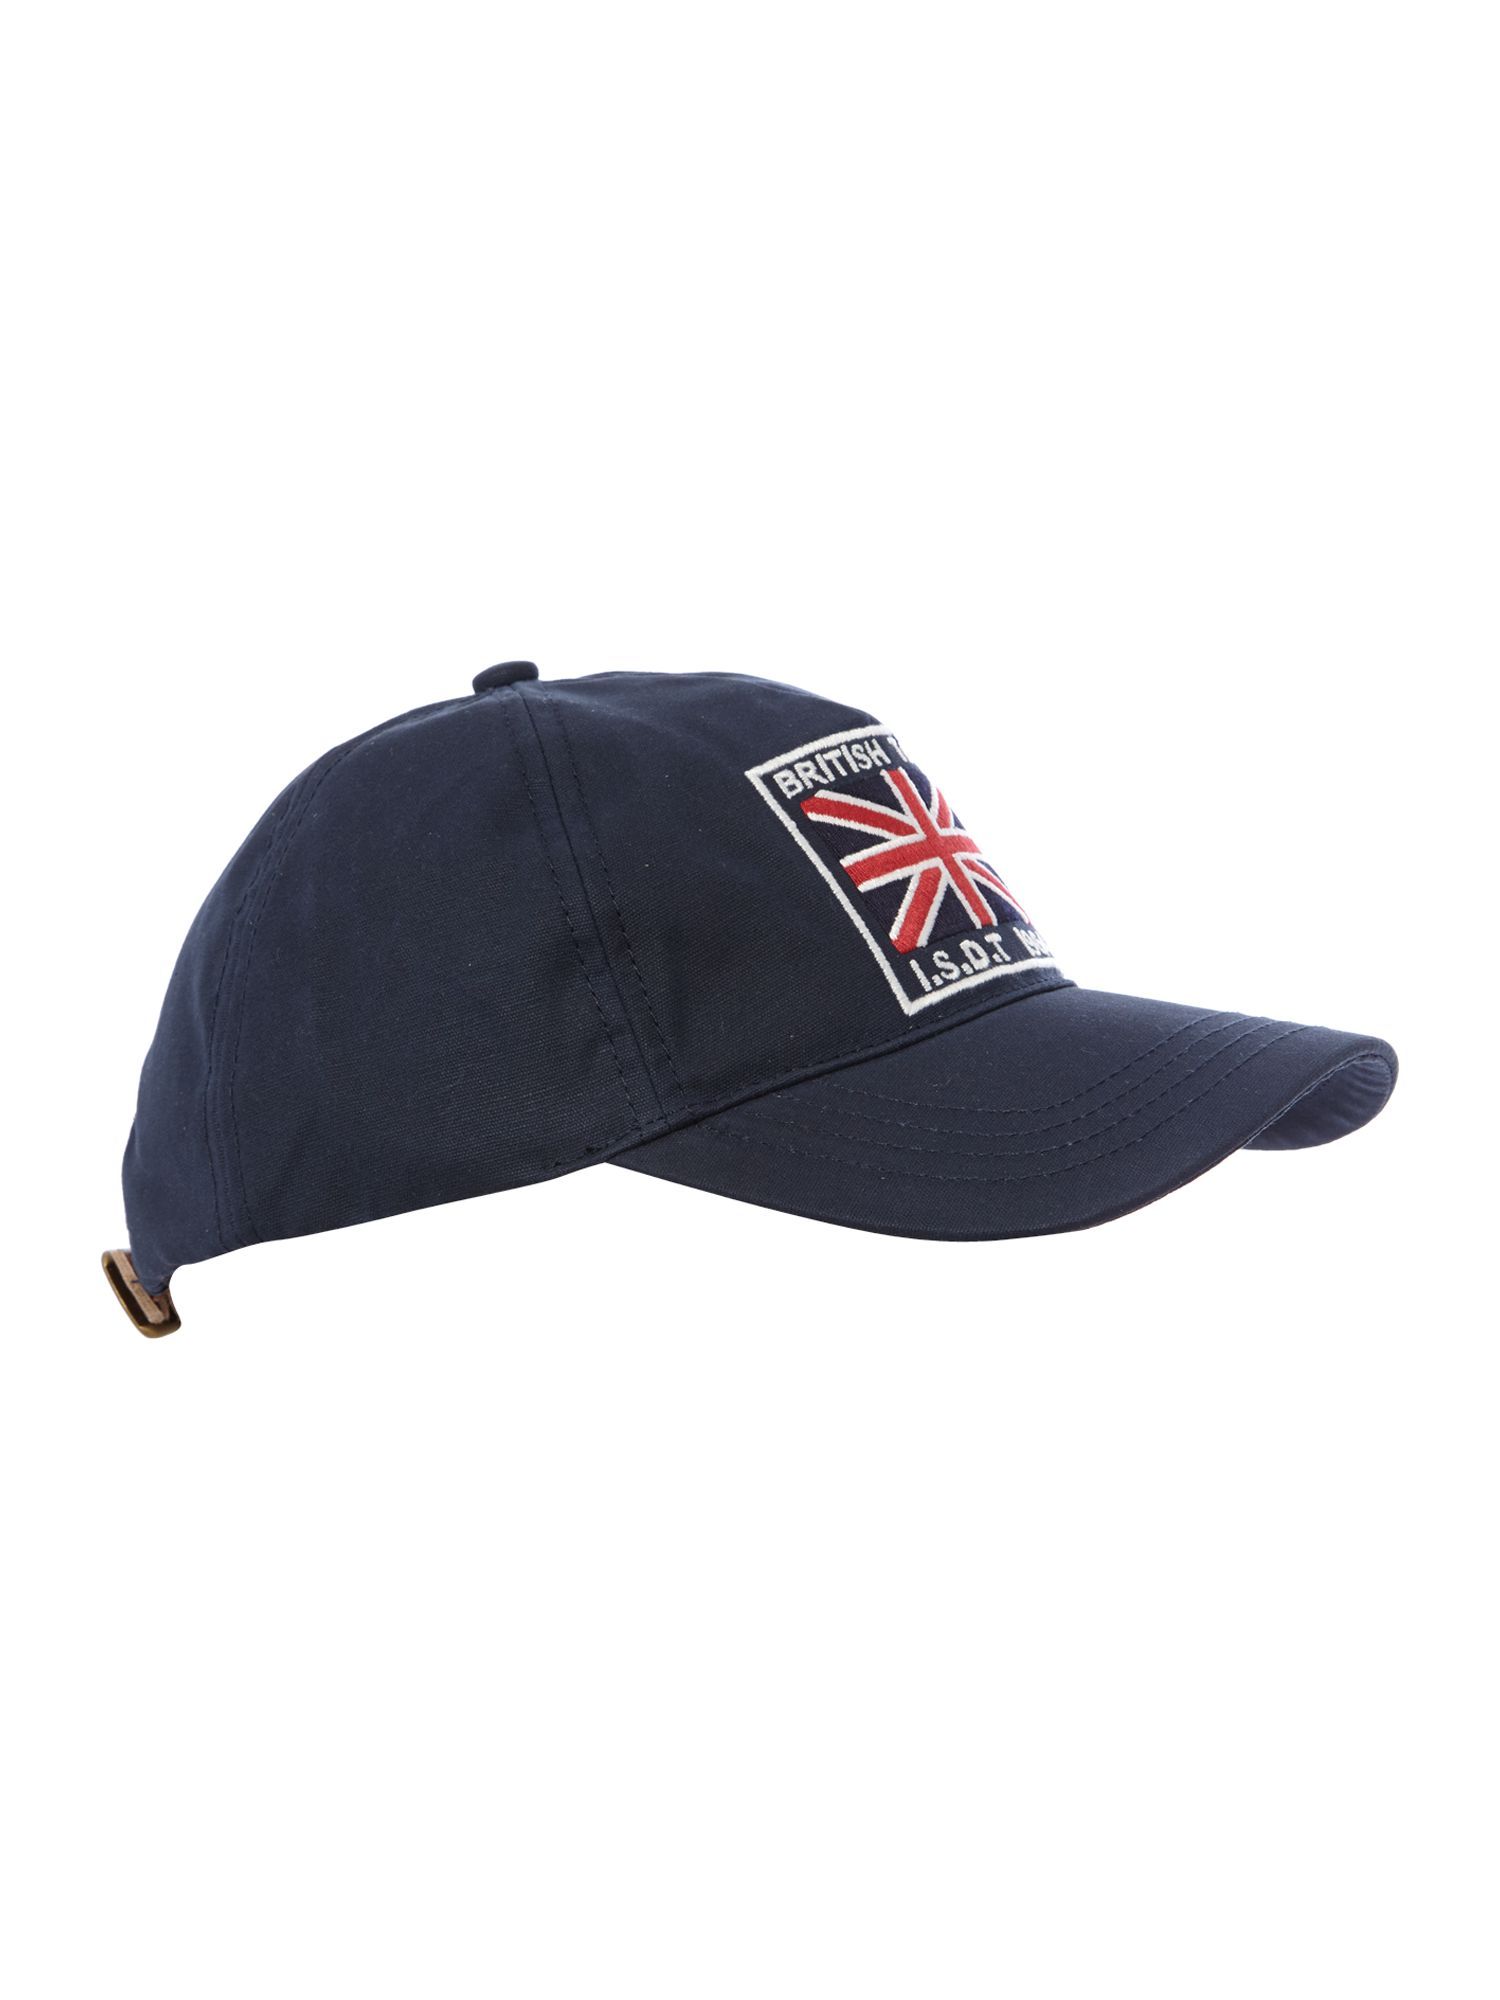 Boys Union jack adjustable cap